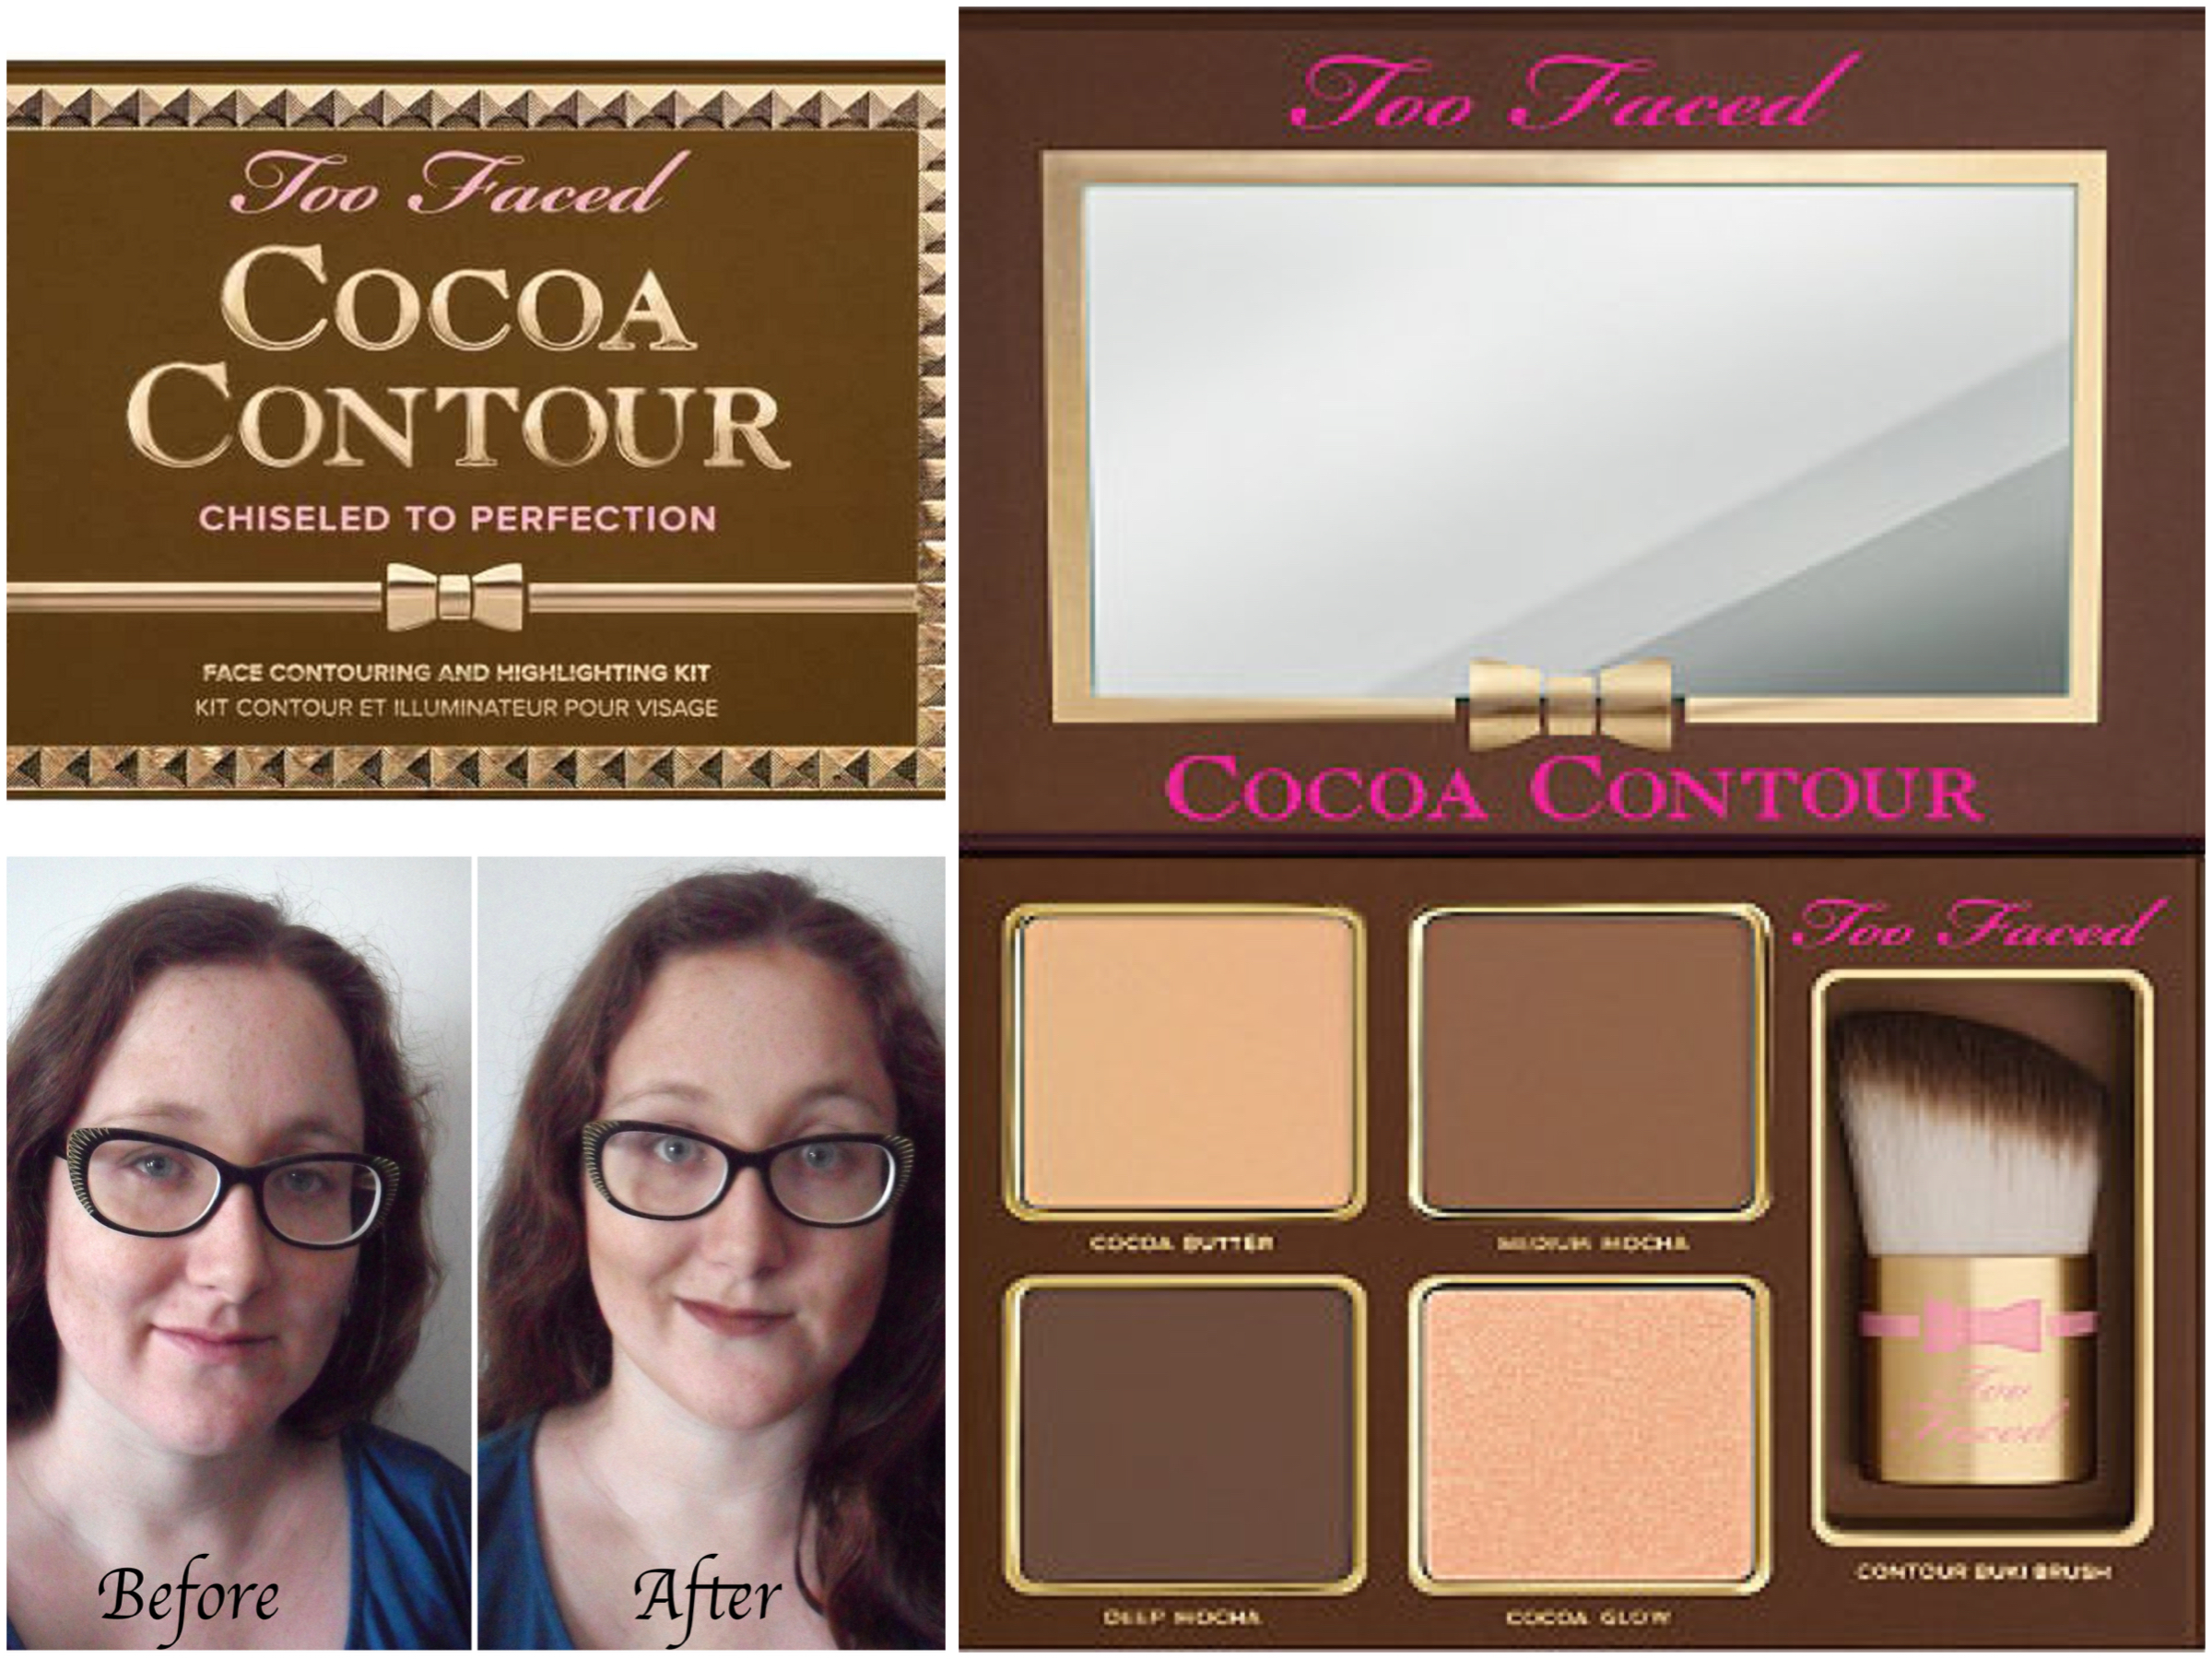 two faced cocoa contour review